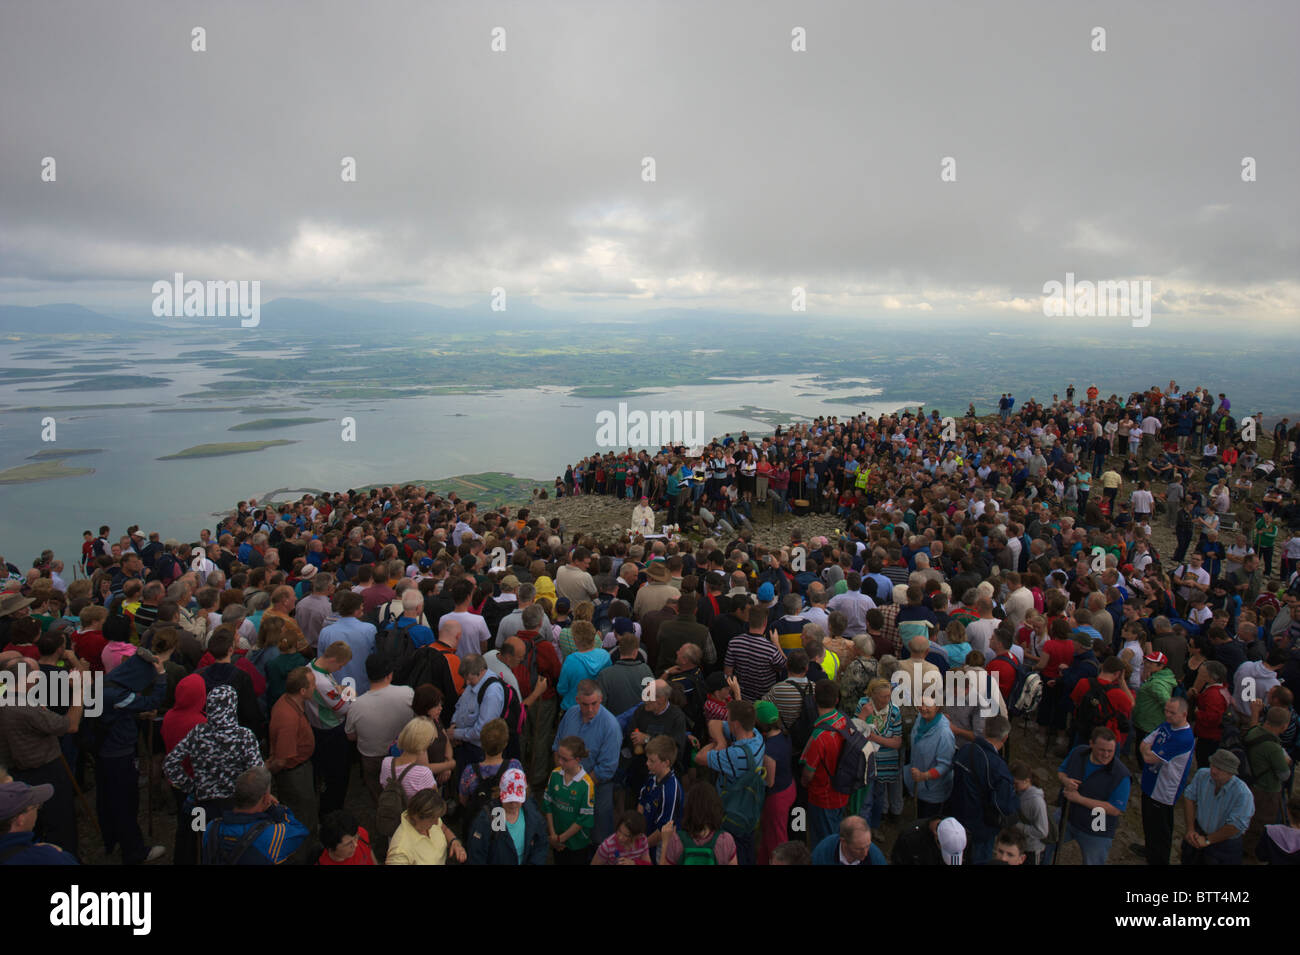 People praying on the top of Croagh Patrick a holy mountain in County Mayo, Ireland. - Stock Image